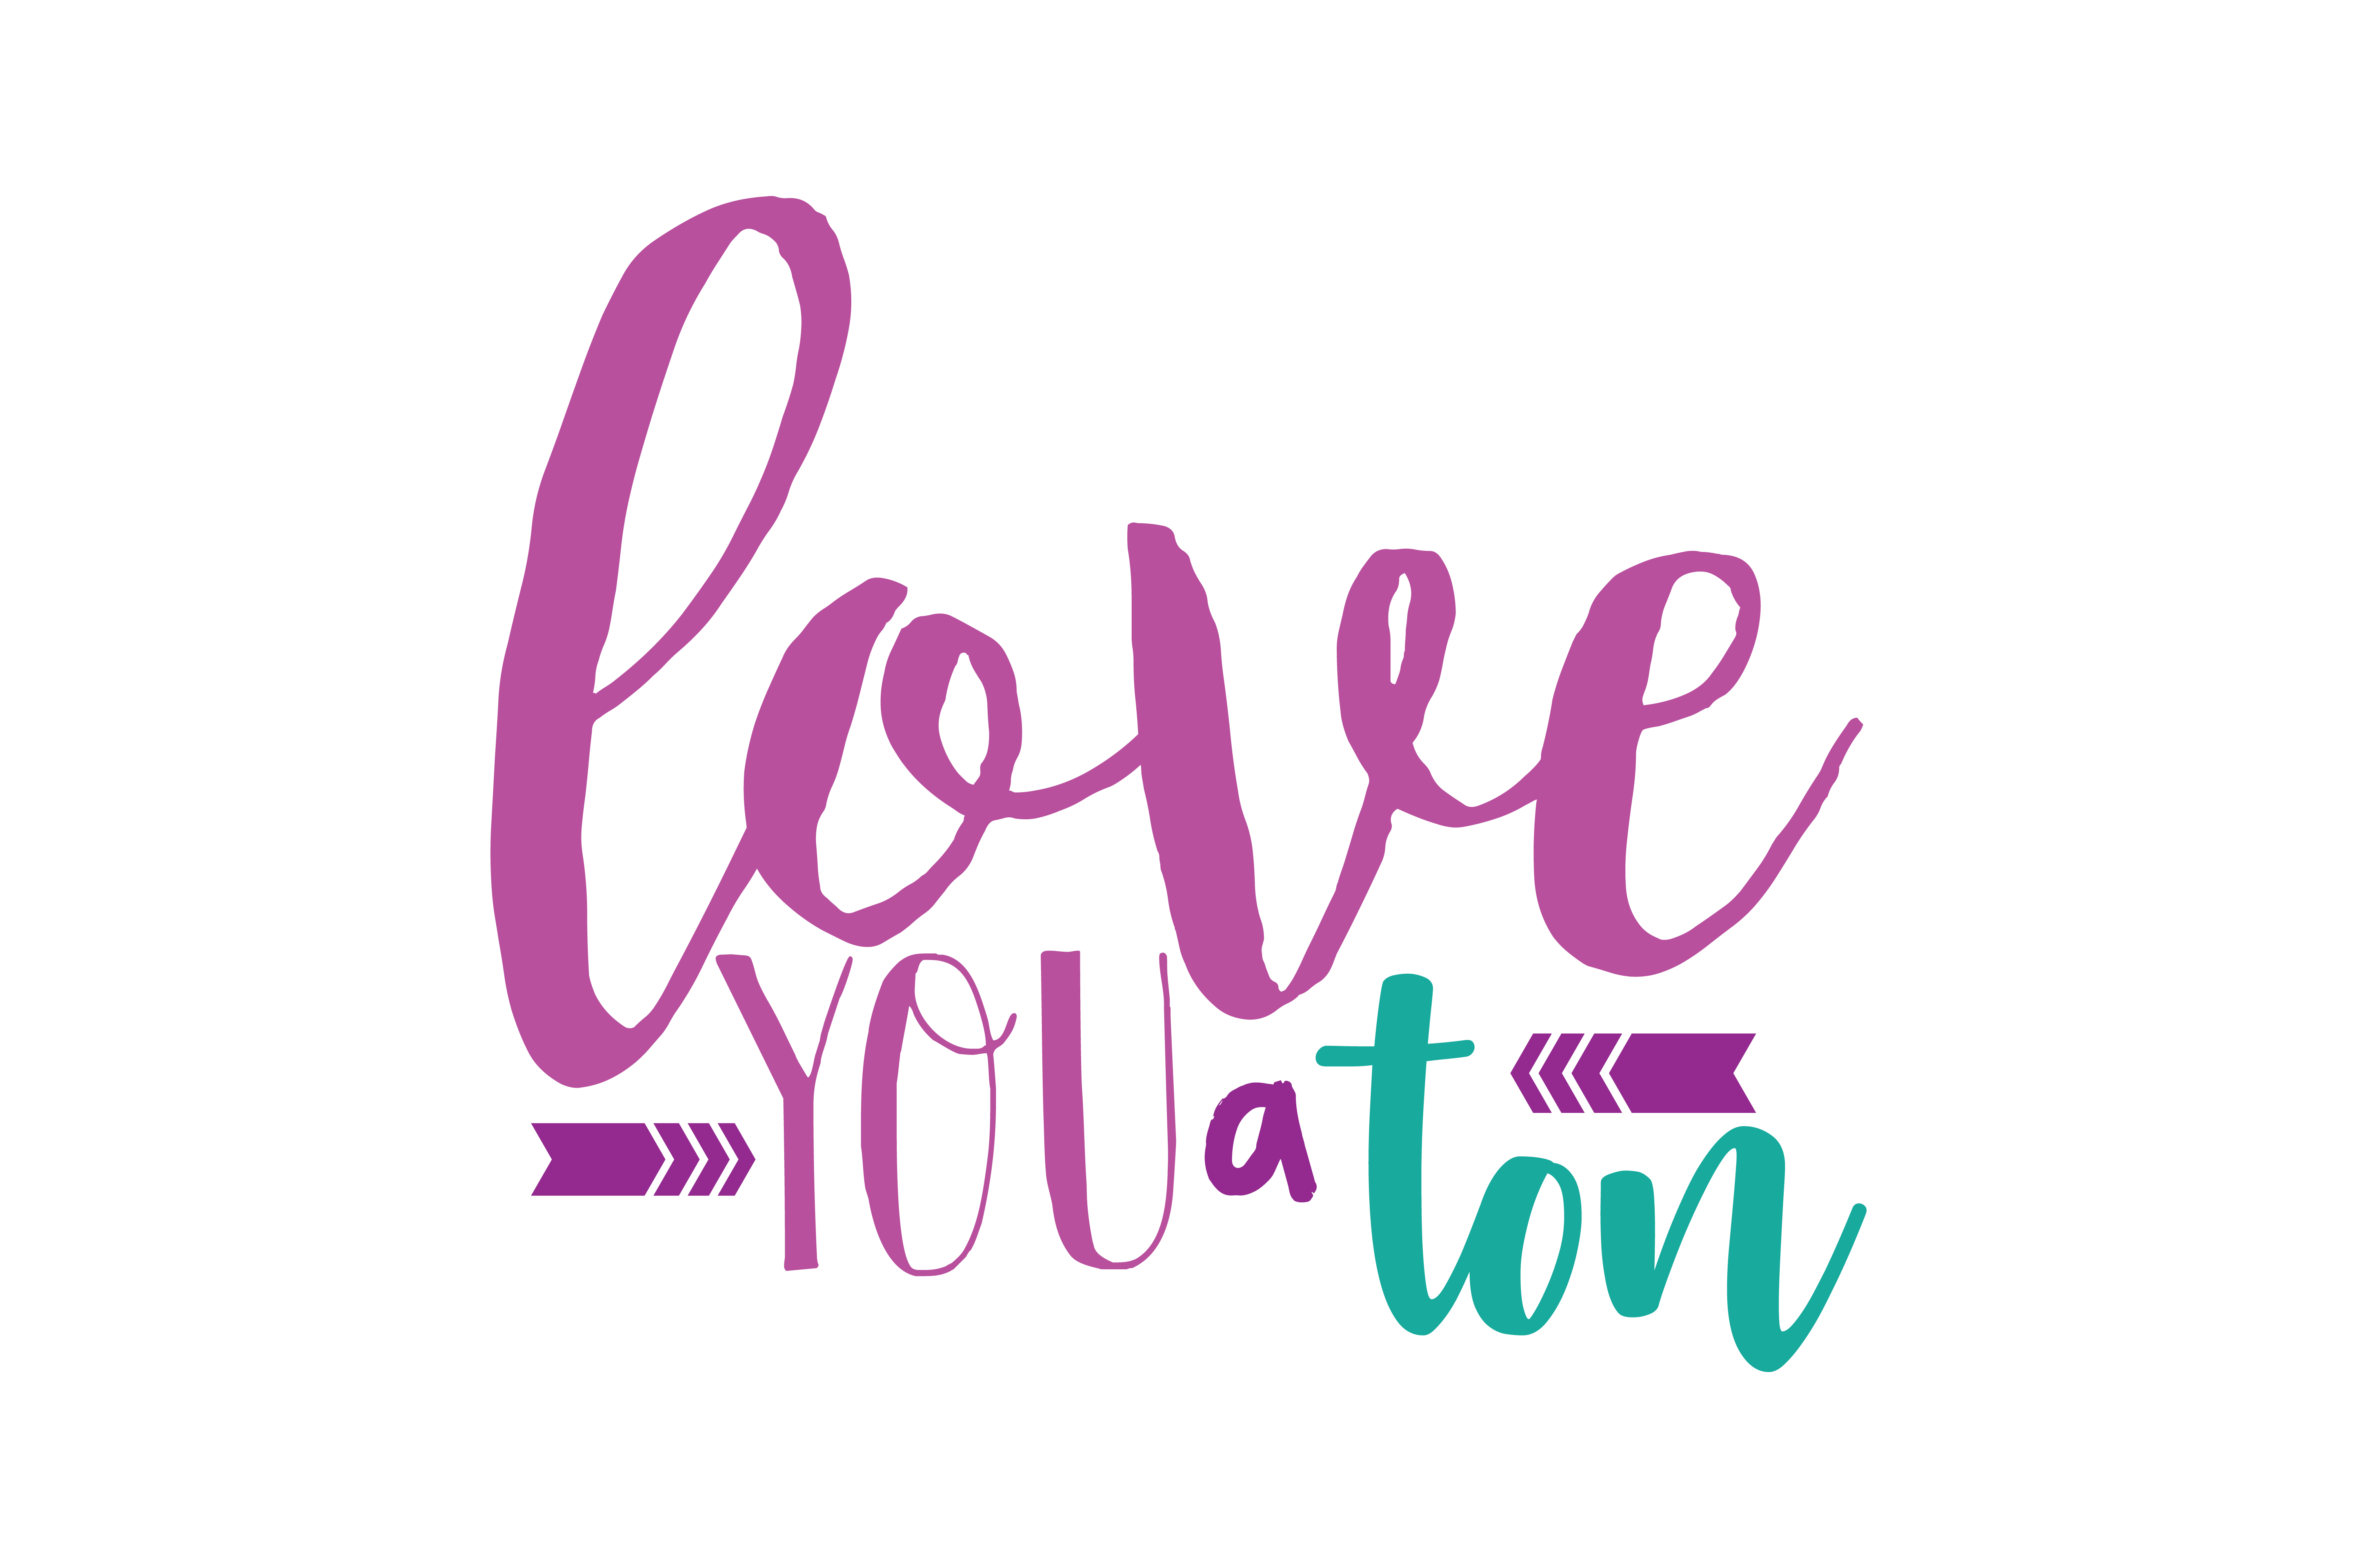 Download Free Love You A Ton Quote Svg Cut Graphic By Thelucky Creative Fabrica for Cricut Explore, Silhouette and other cutting machines.